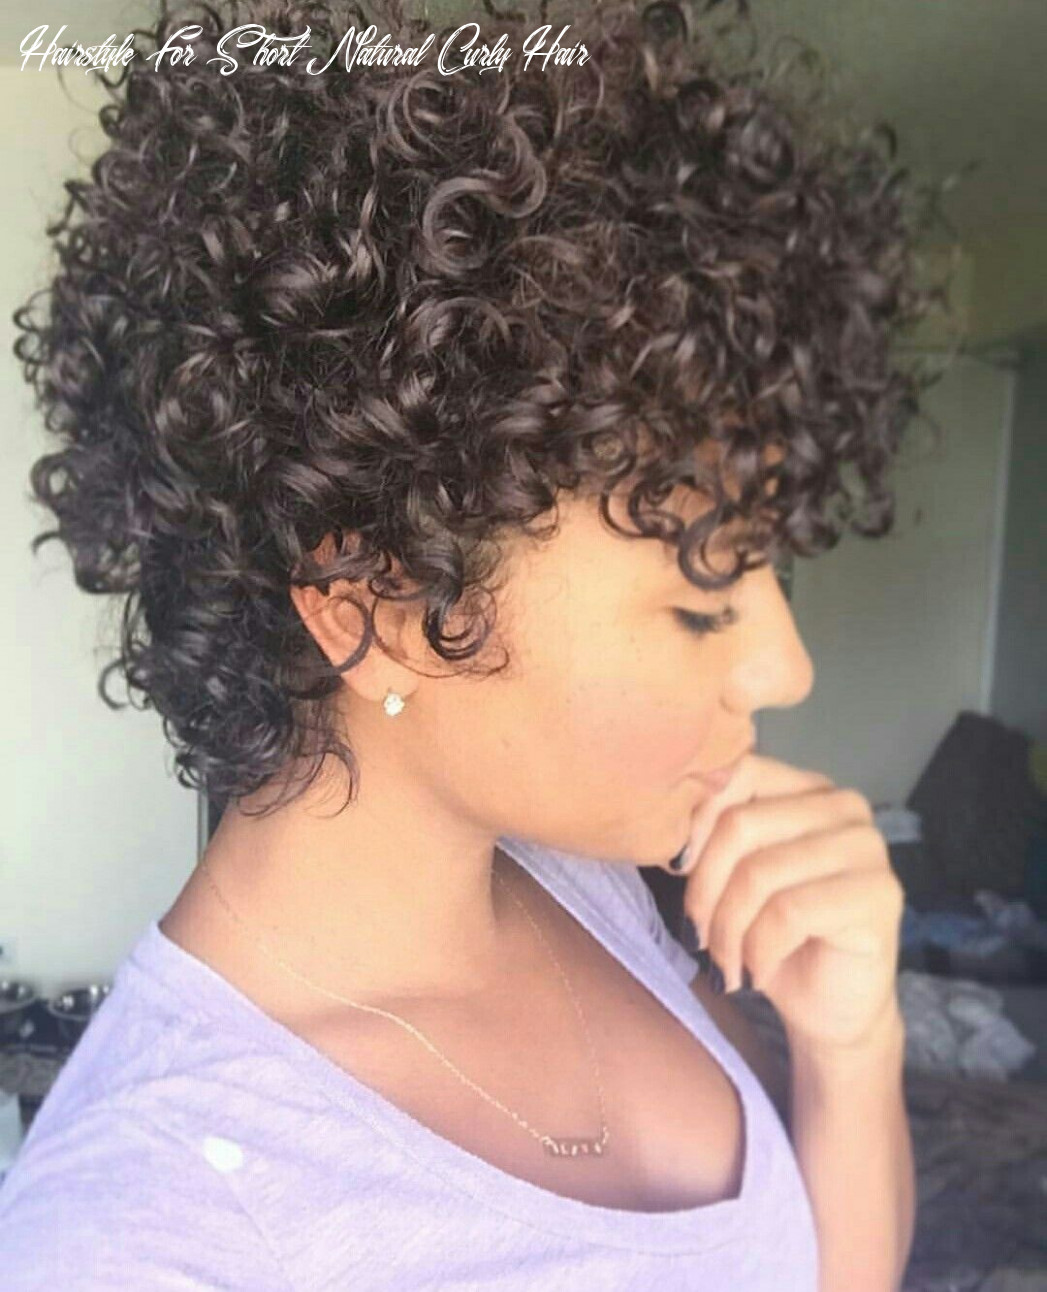 Short hair perm #flhairbylo #avedaibw #inspo | curly hair styles